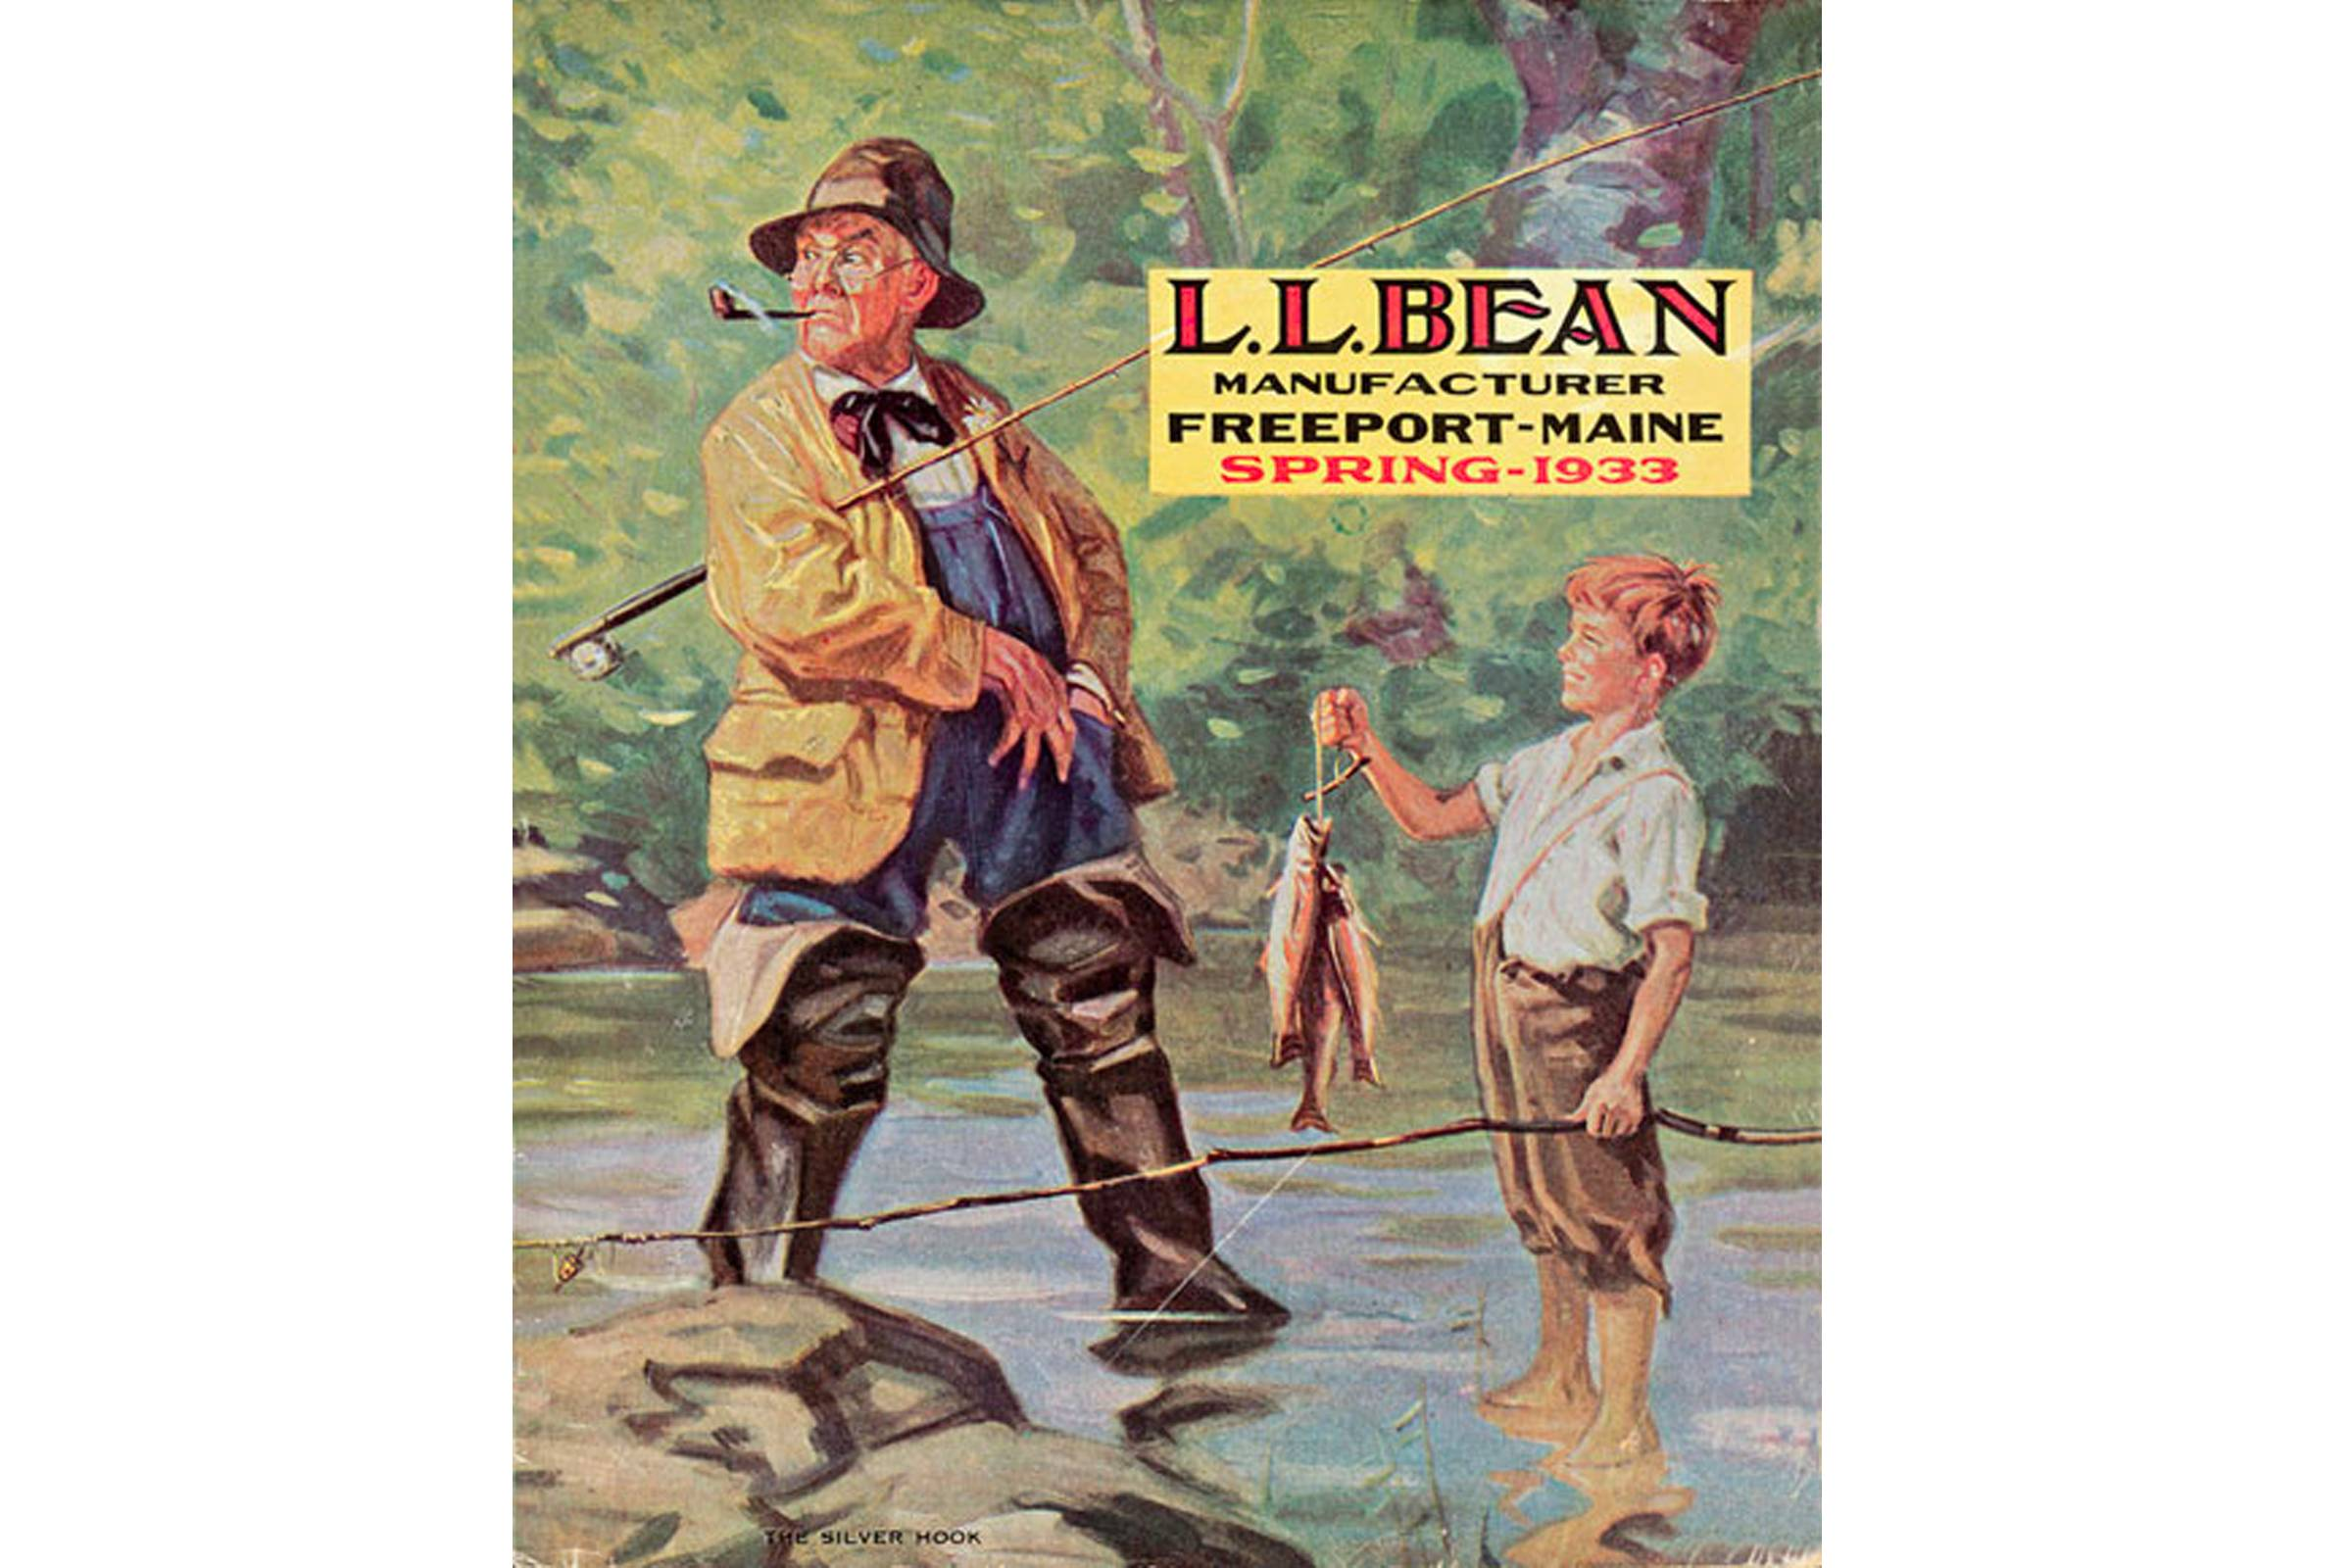 The Spring 1933 L.L. Bean catalog cover